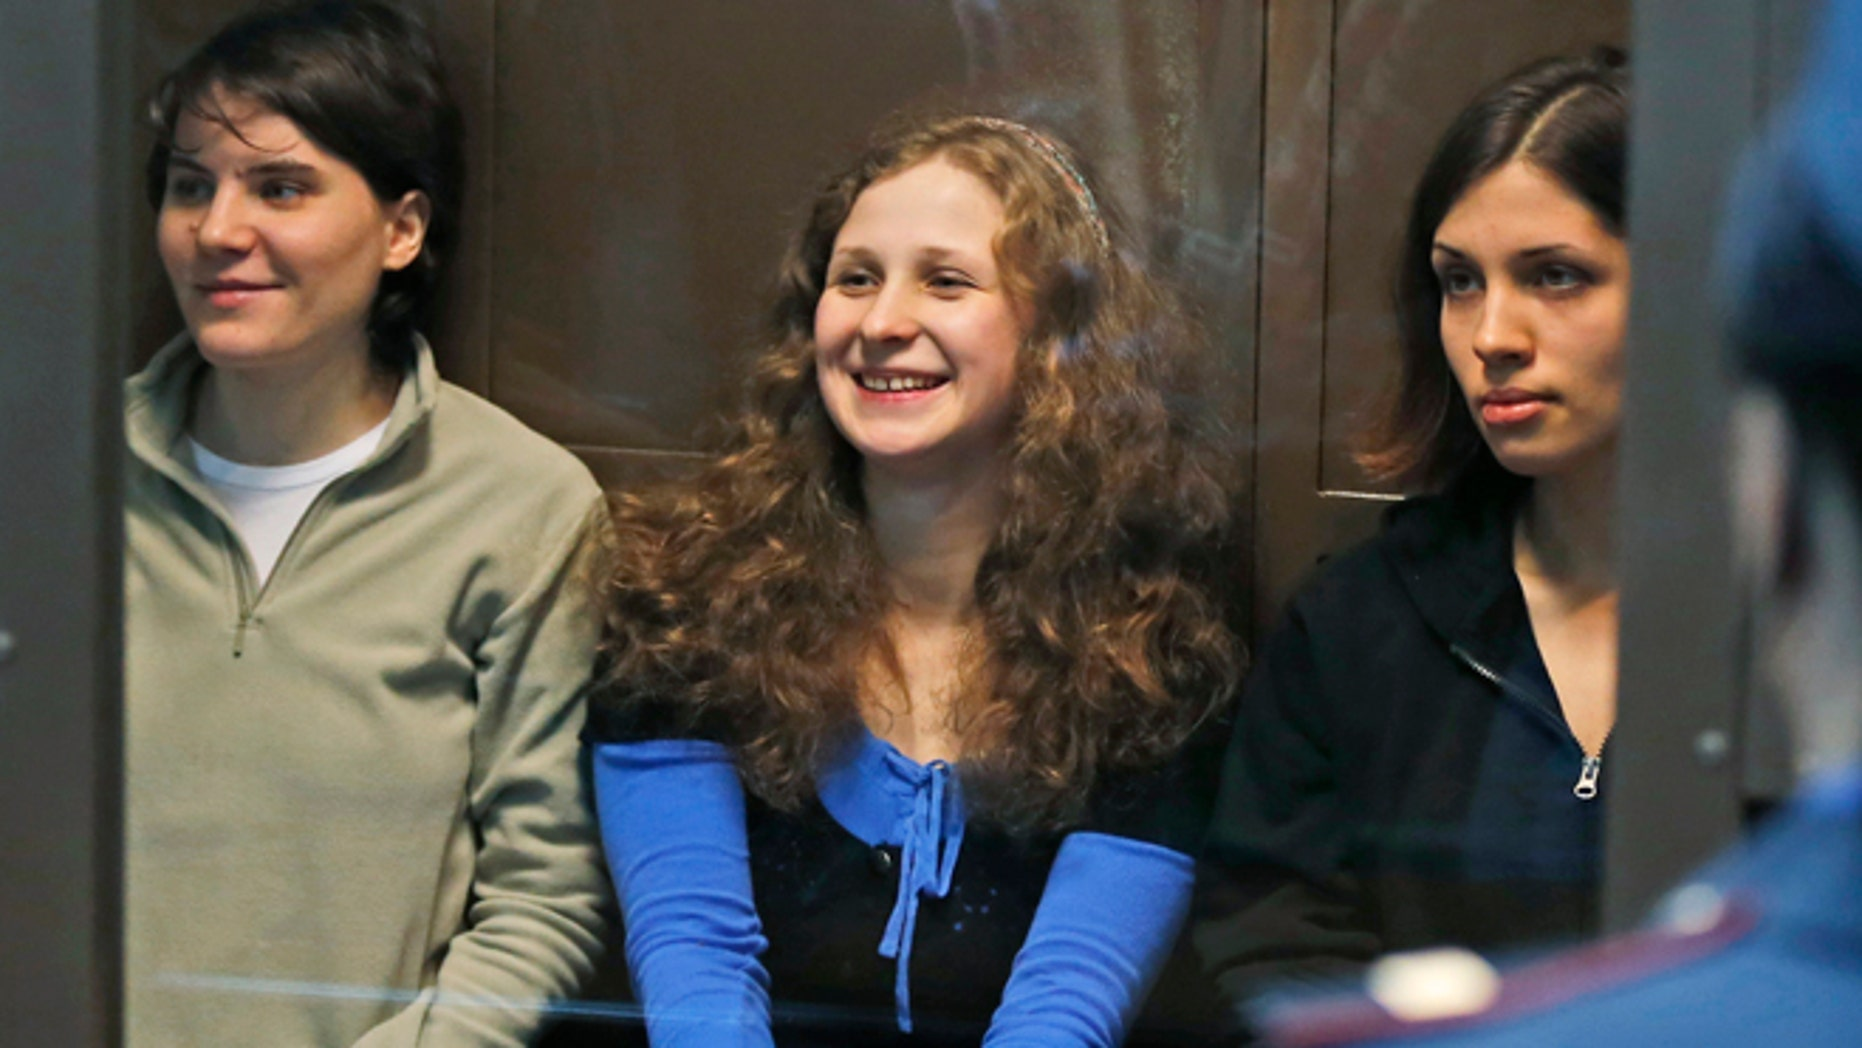 Oct. 10, 2012: In this file photo, feminist punk group Pussy Riot members, from left, Yekaterina Samutsevich, Maria Alekhina and Nadezhda Tolokonnikova sit in a glass cage at a court room in Moscow, Russia.